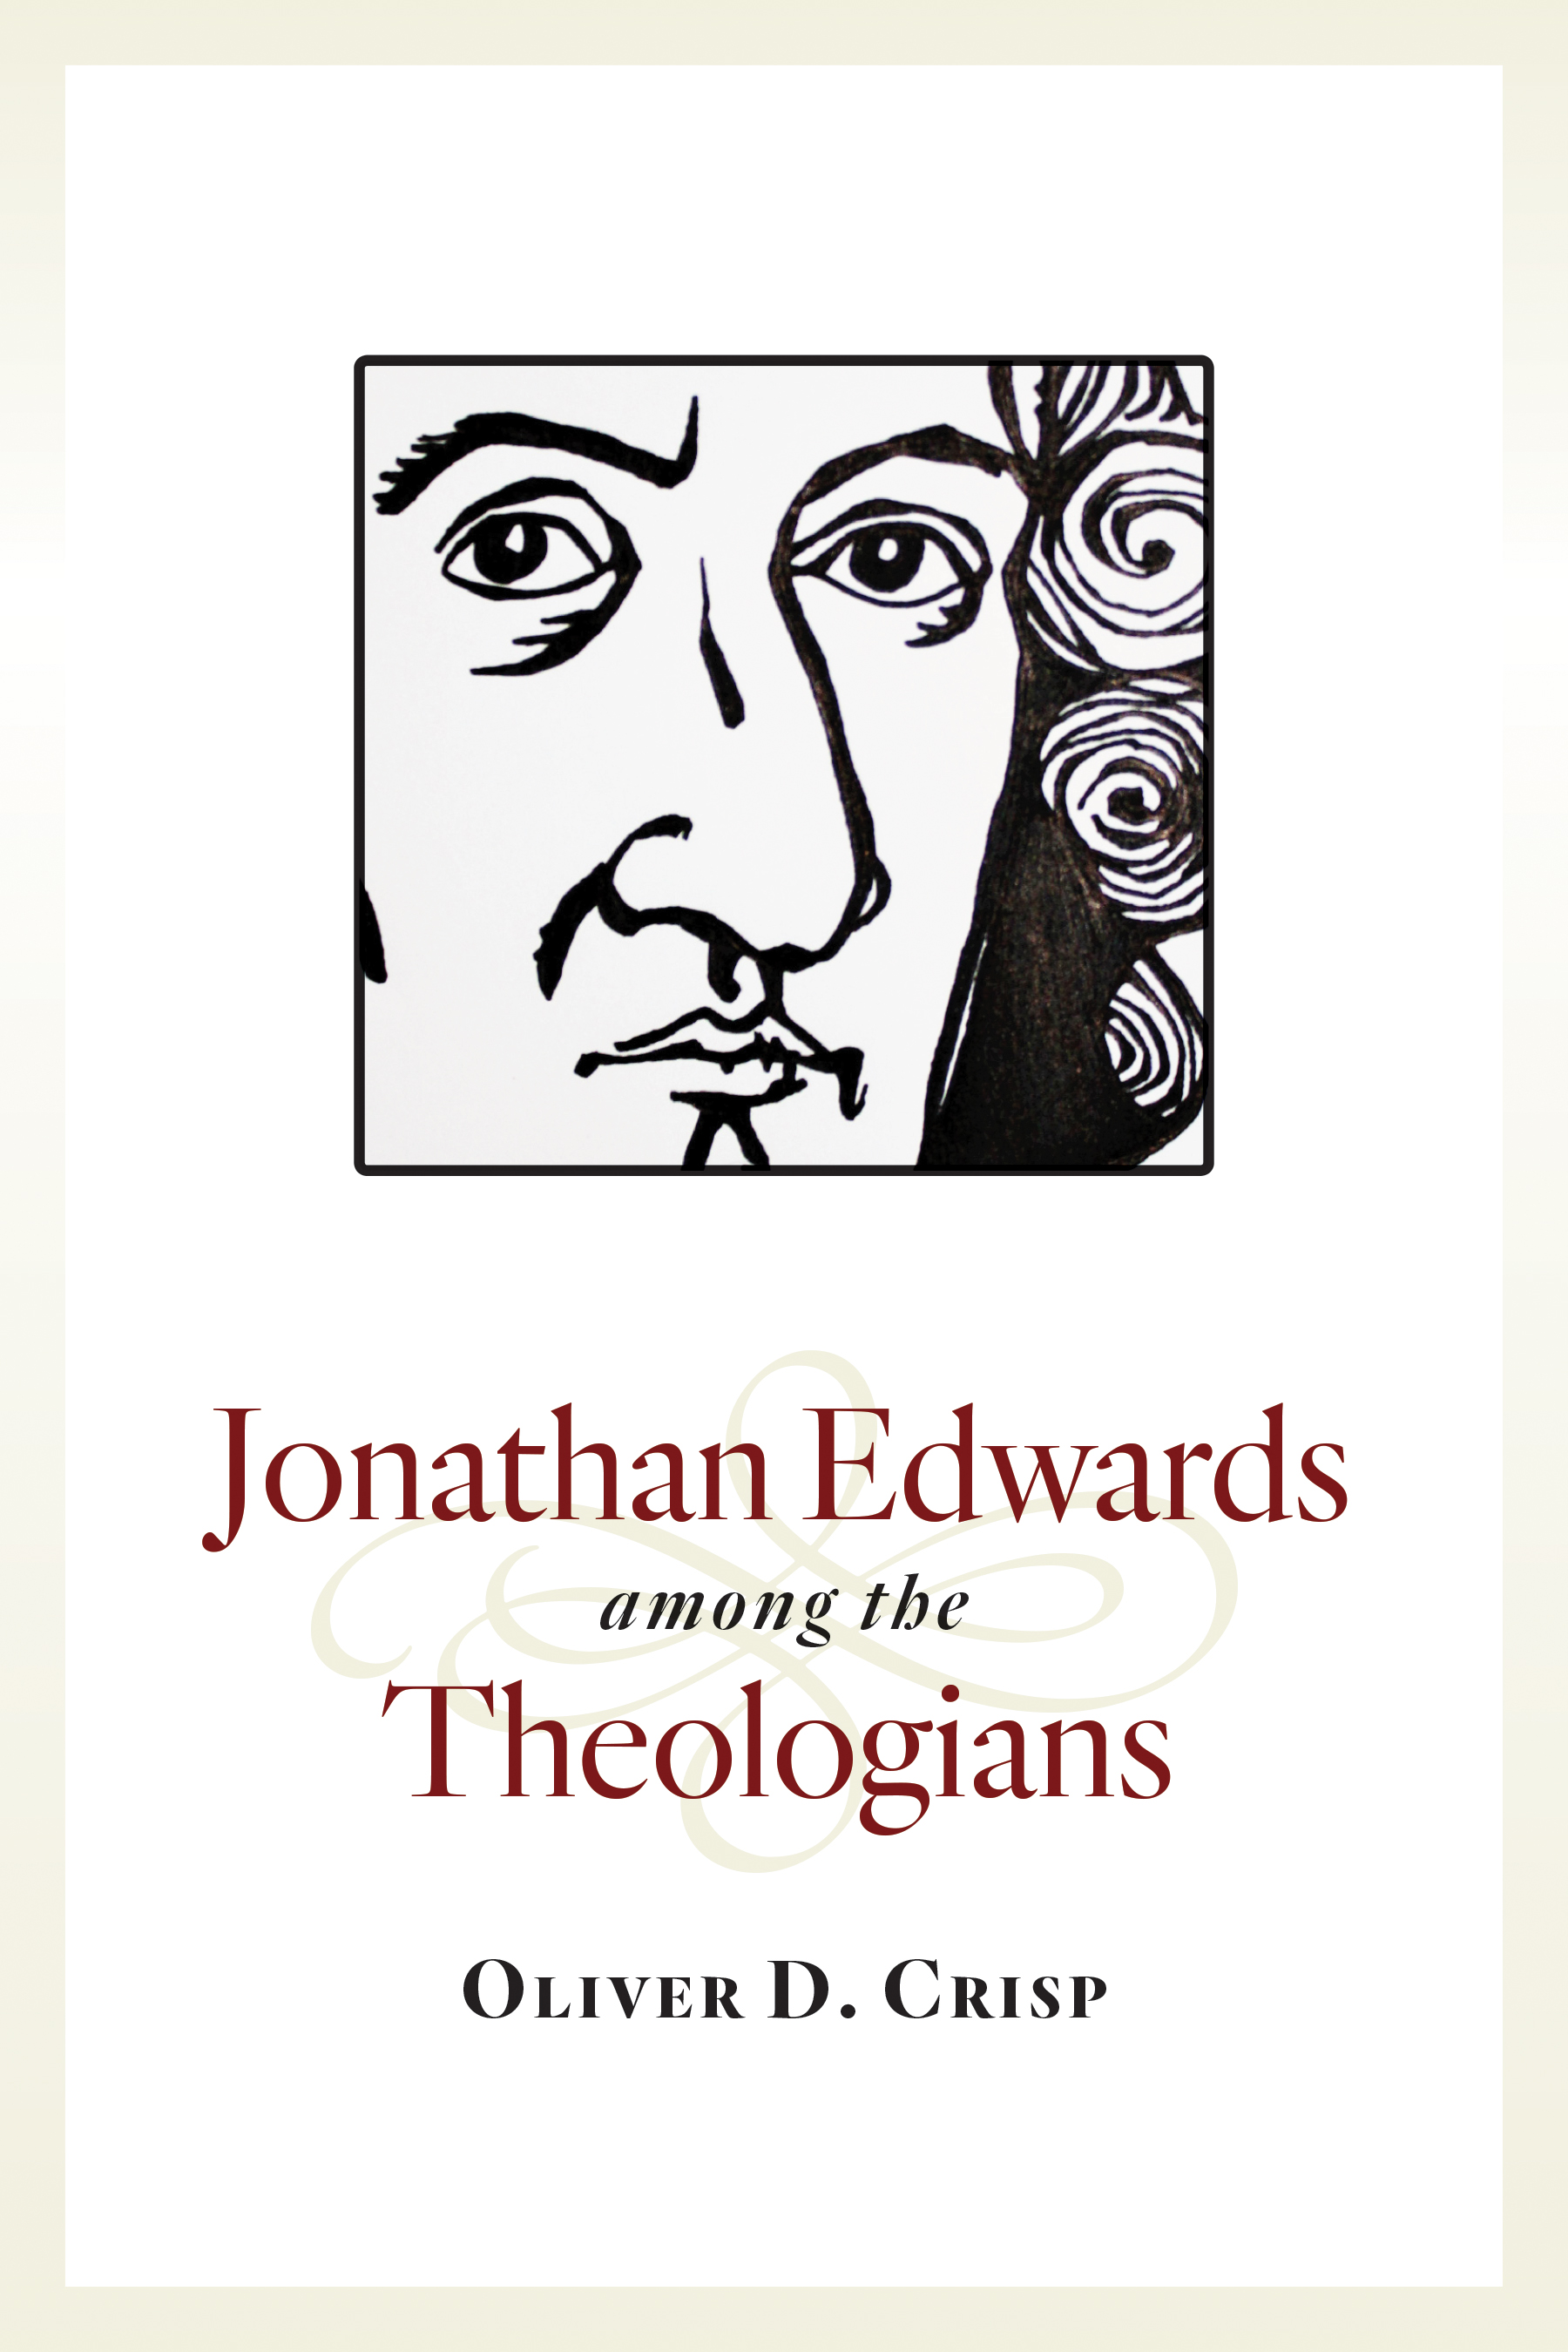 Jonathan Edwards among the Theologians